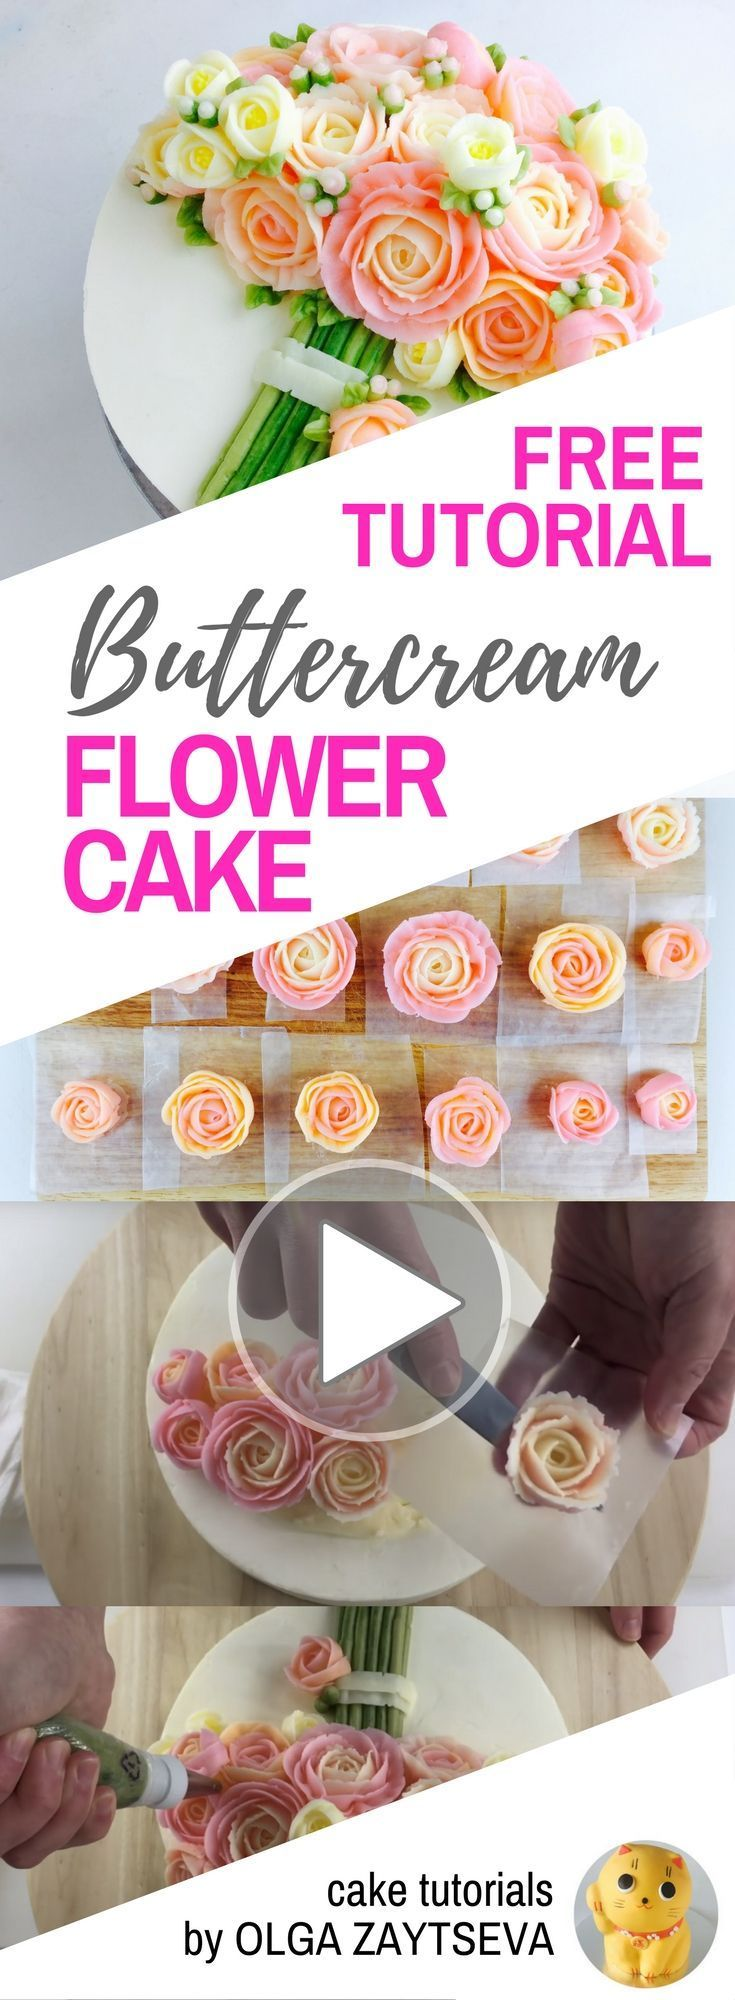 Hot Cake Trends How To Make Pink Roses Buttercream Bouquet Cake